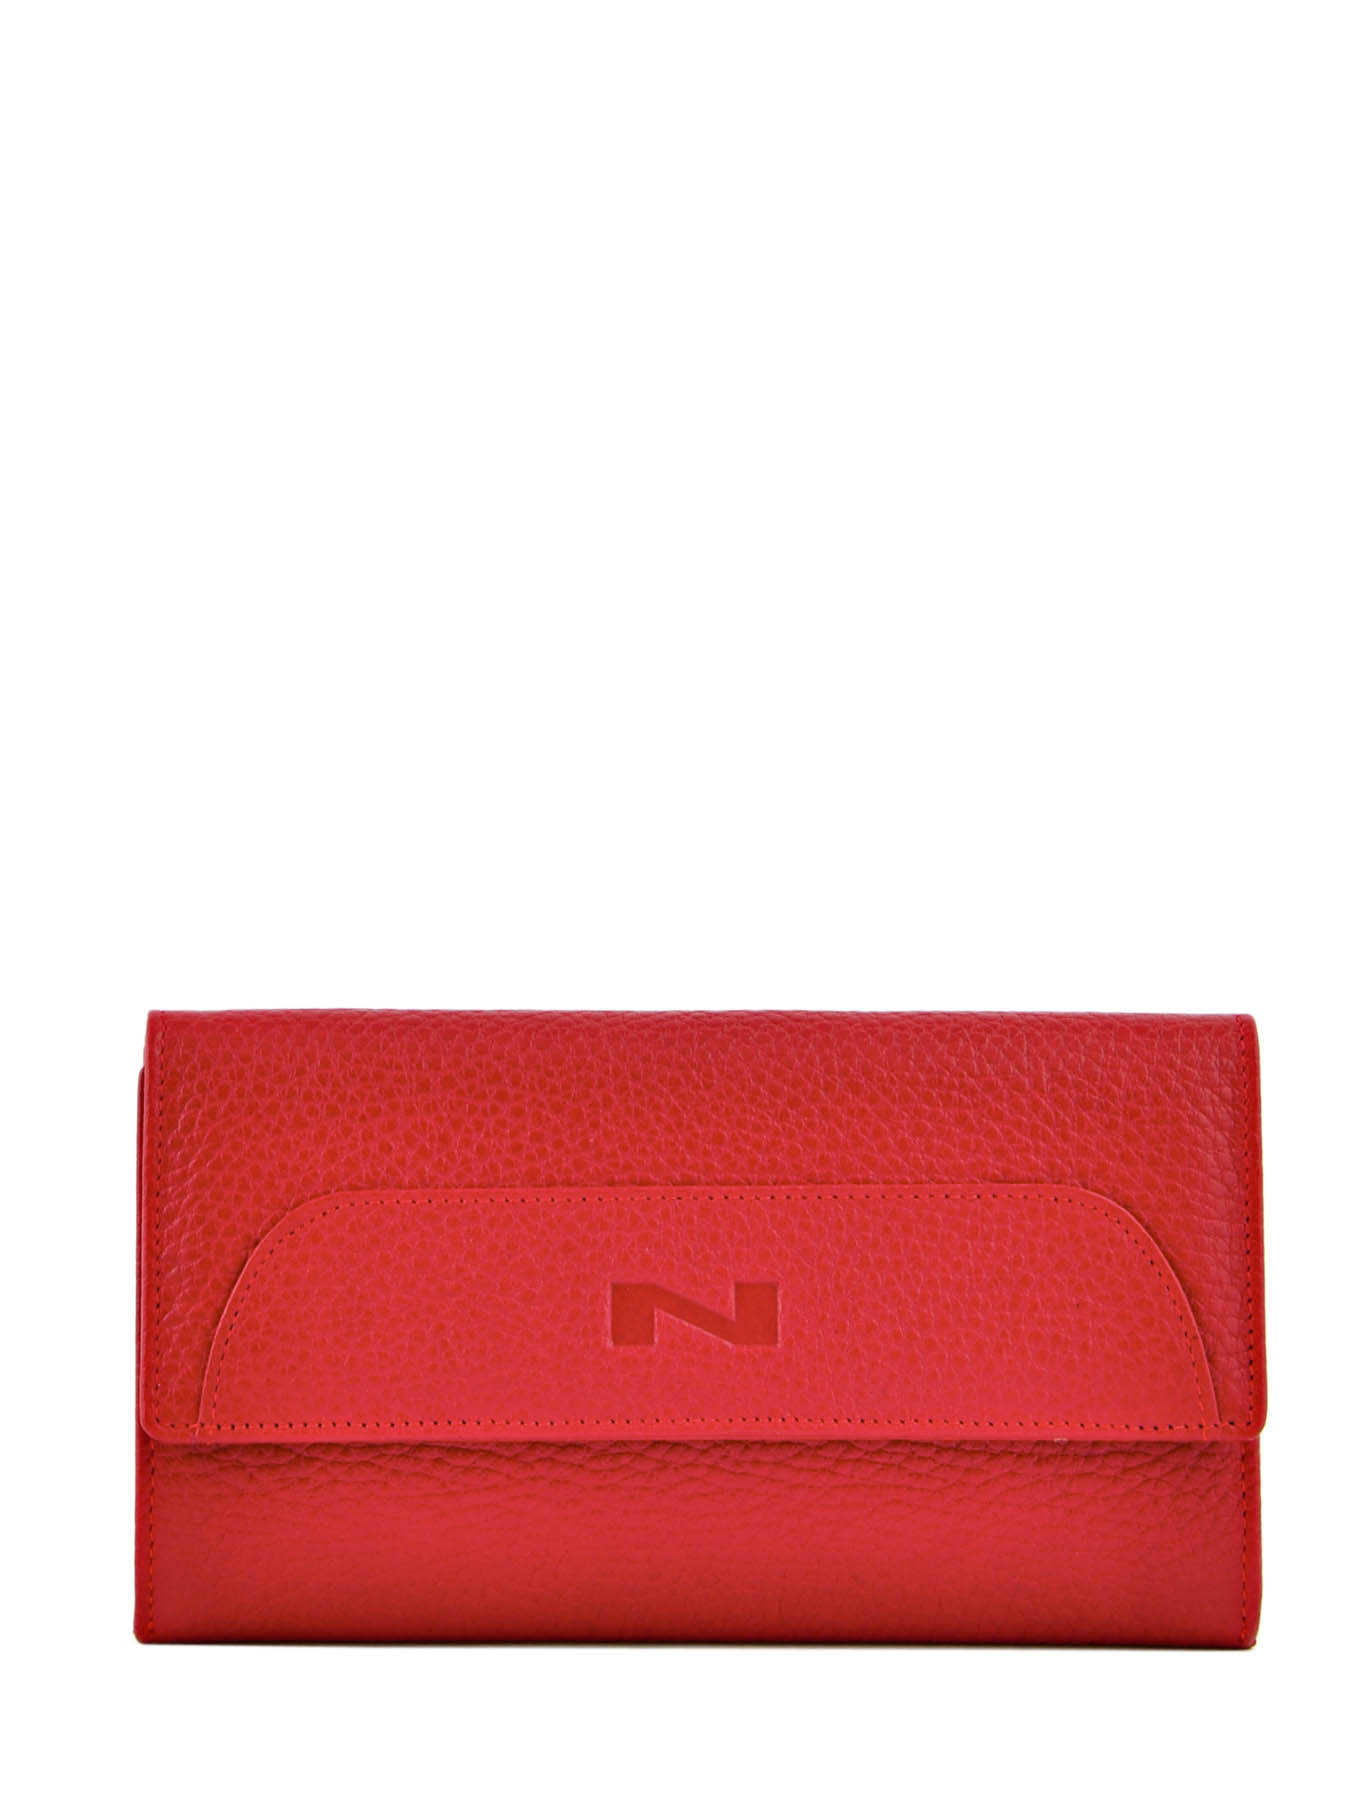 6ddb28e26c4 ... Portefeuille Cuir Nathan baume Rouge original homme 960080N ...